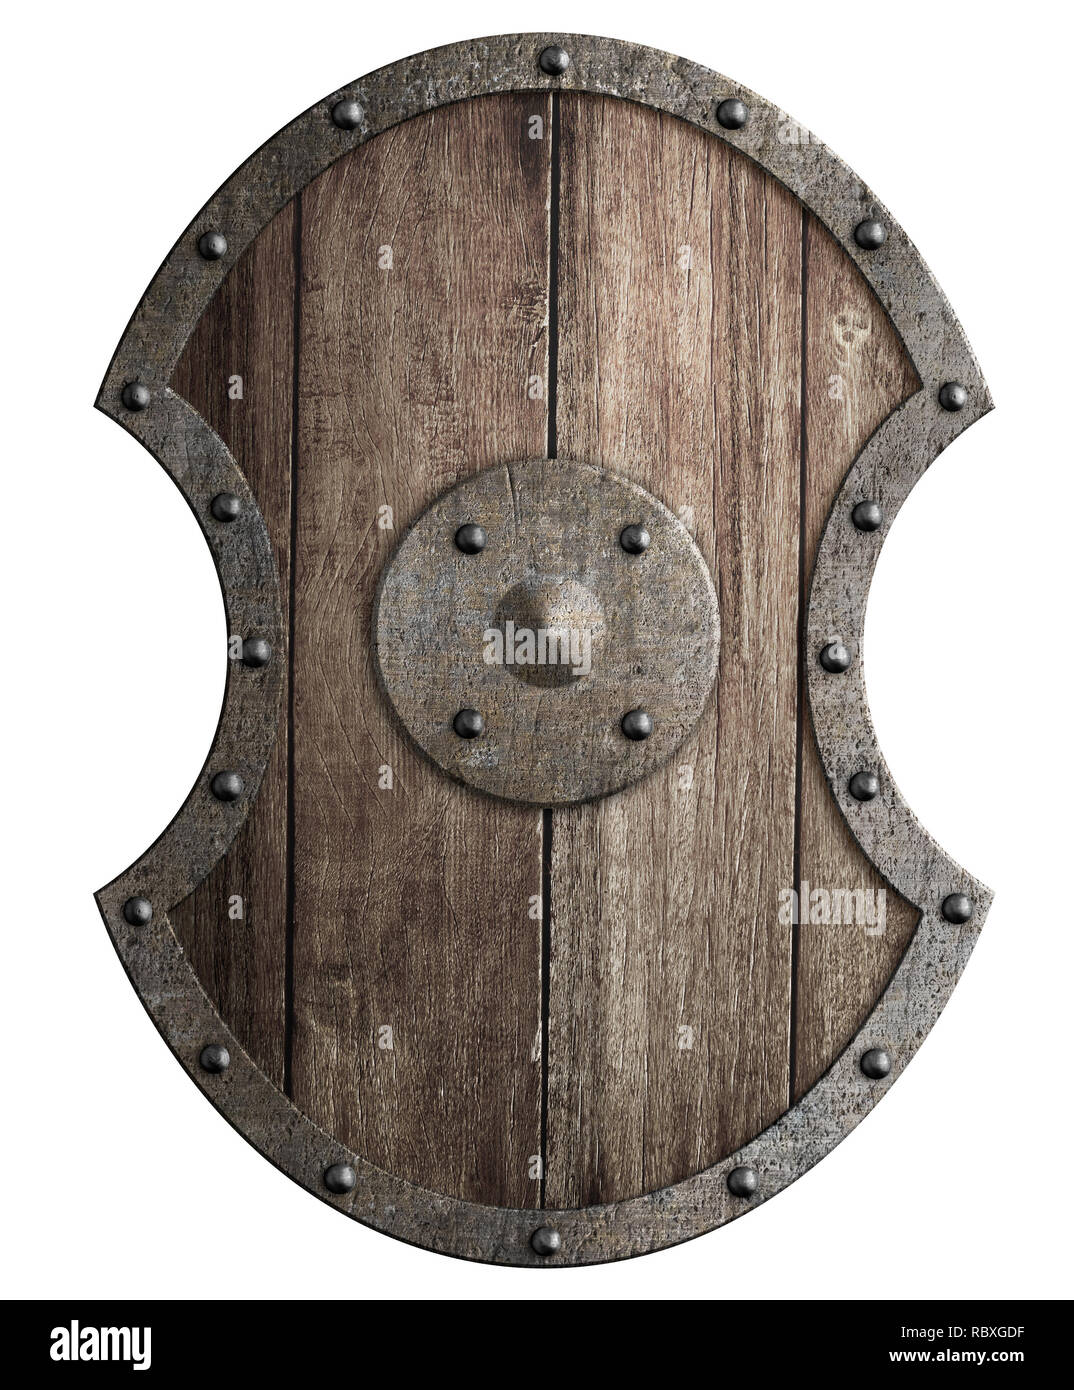 Large wooden shield with metal frame isolated 3d